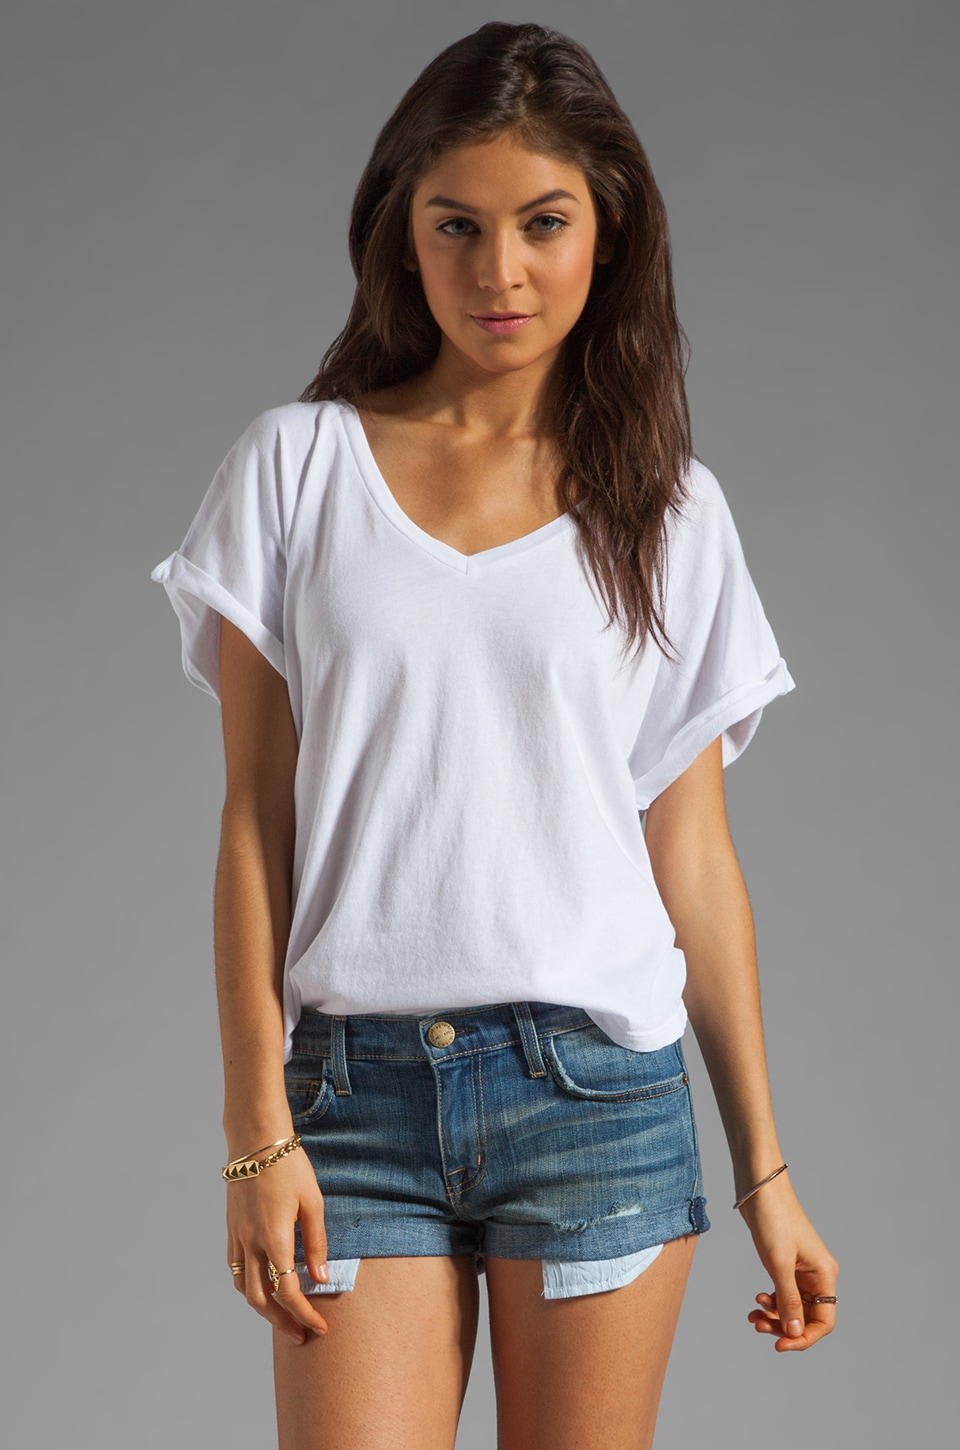 C&C California Cap Sleeve Double V-Neck Tee in White